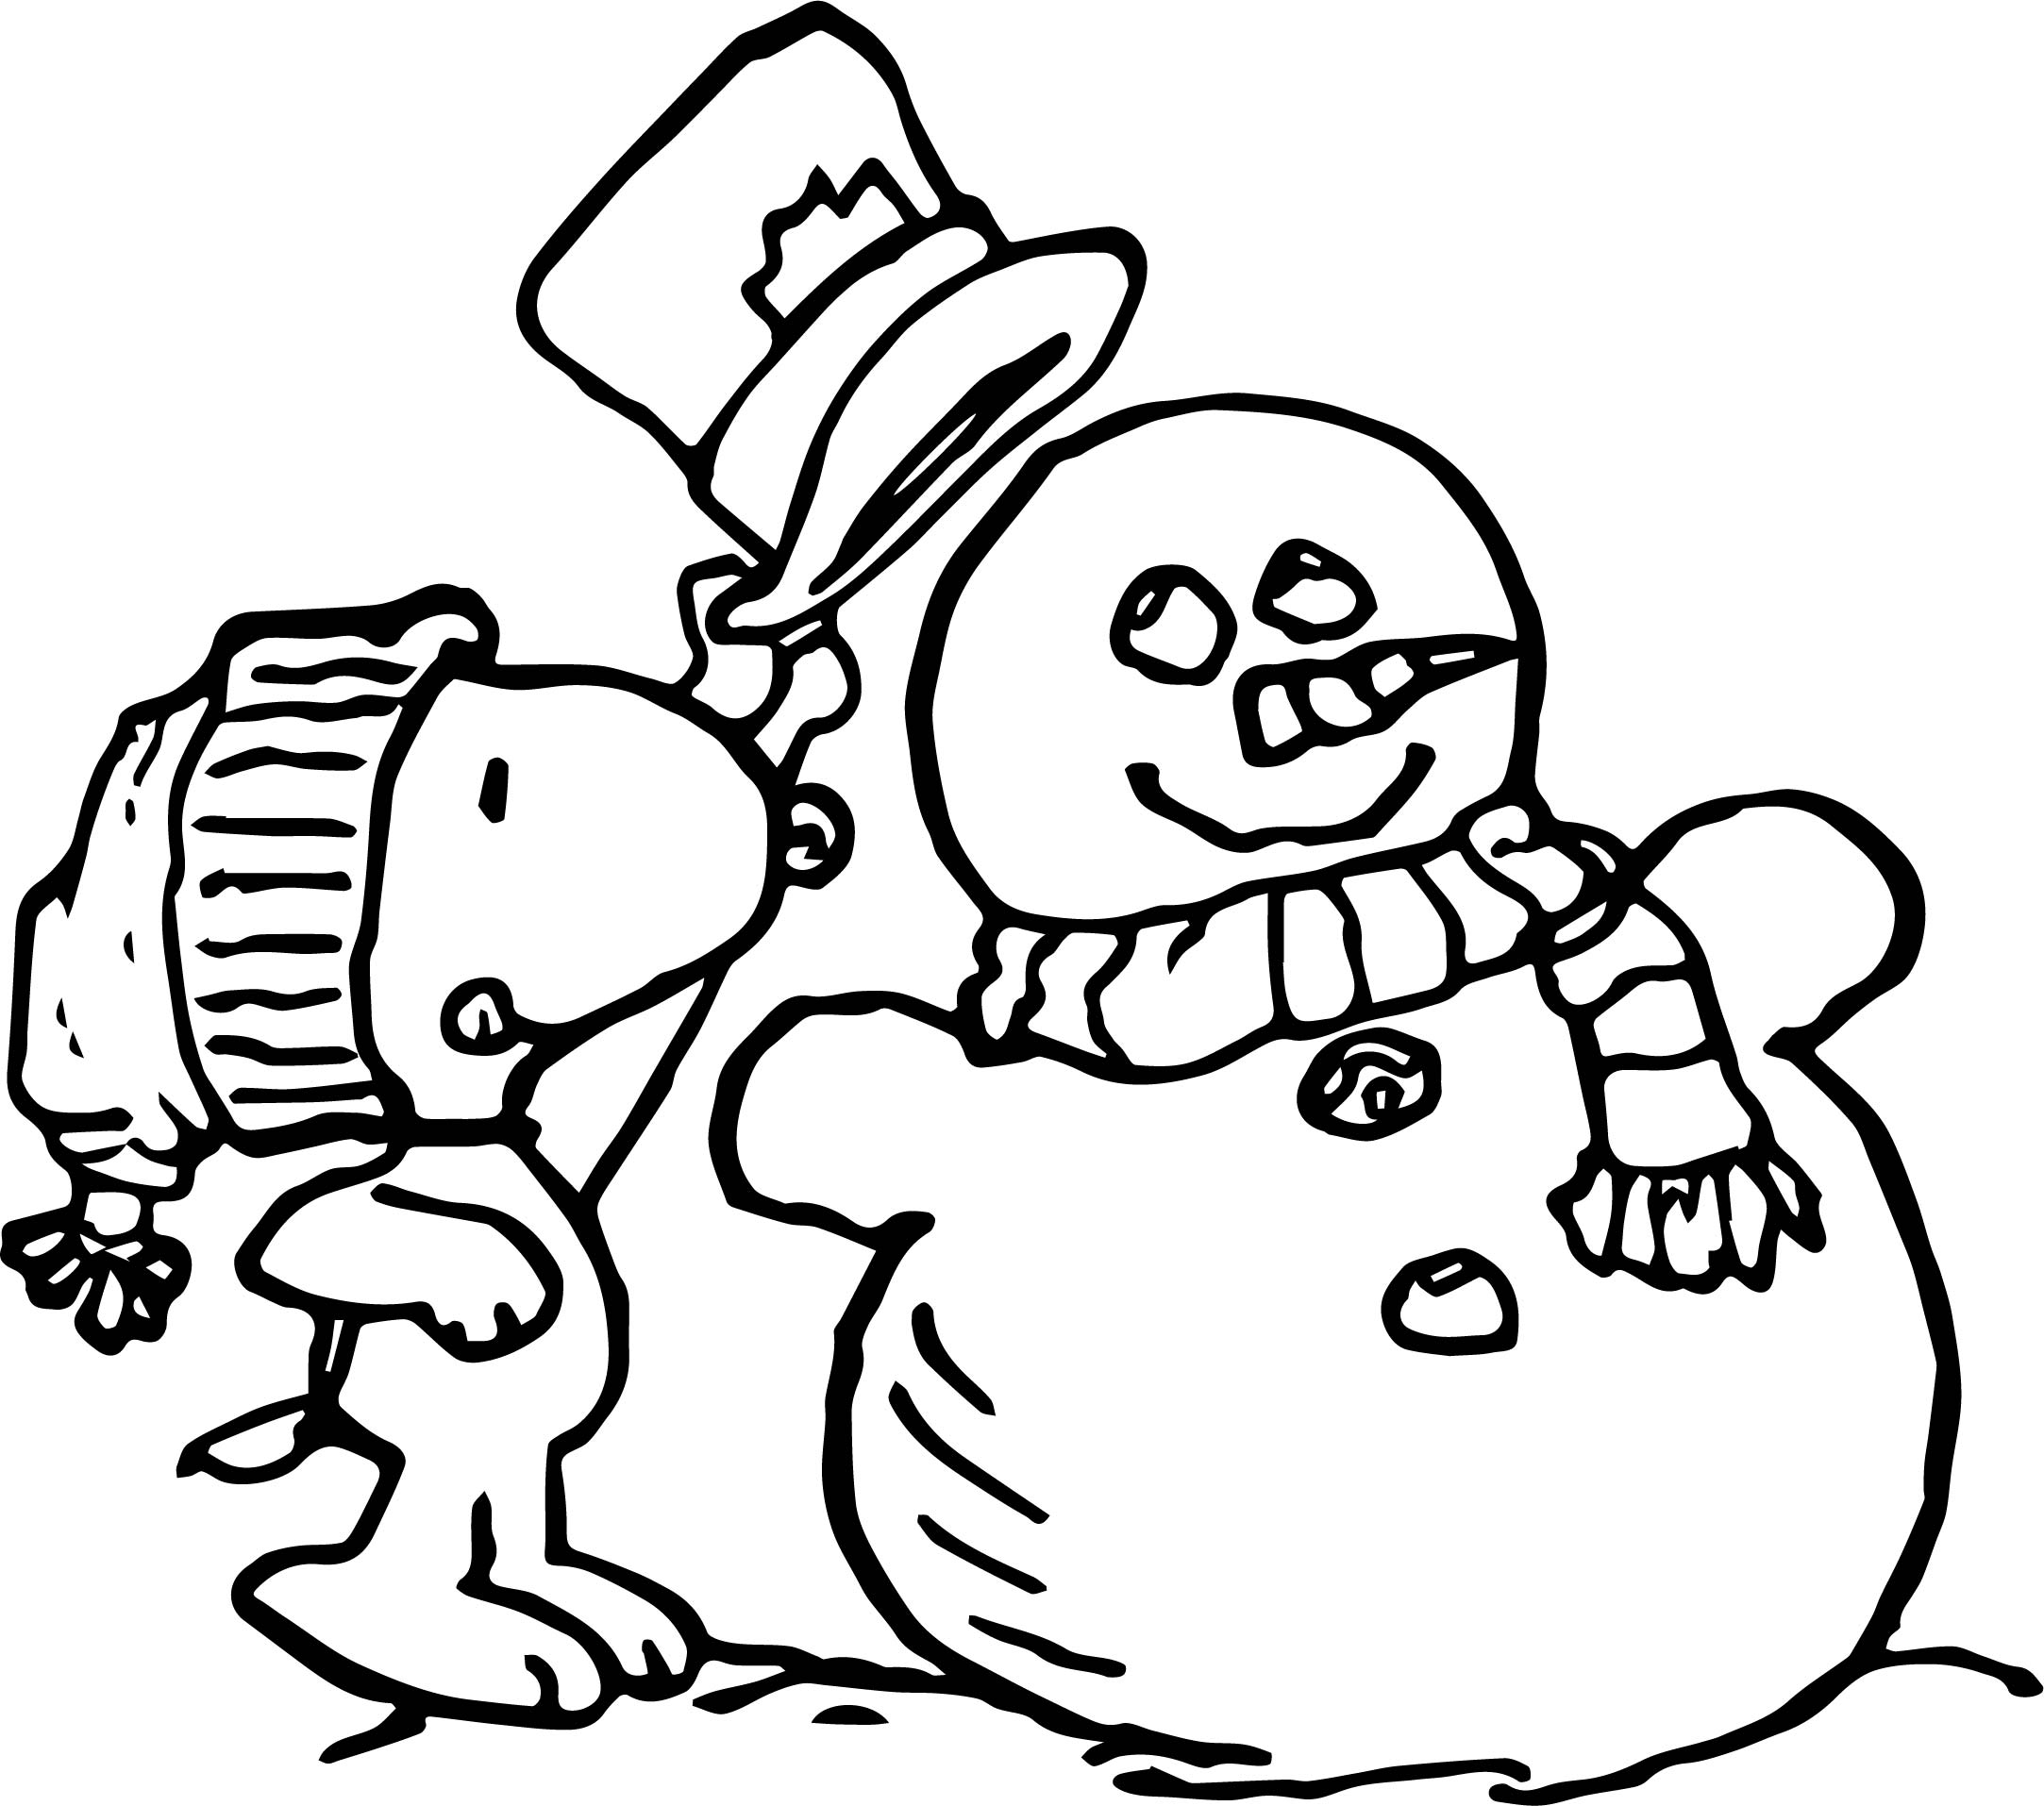 Peanuts Snoopy Winter Coloring Page Wecoloringpage